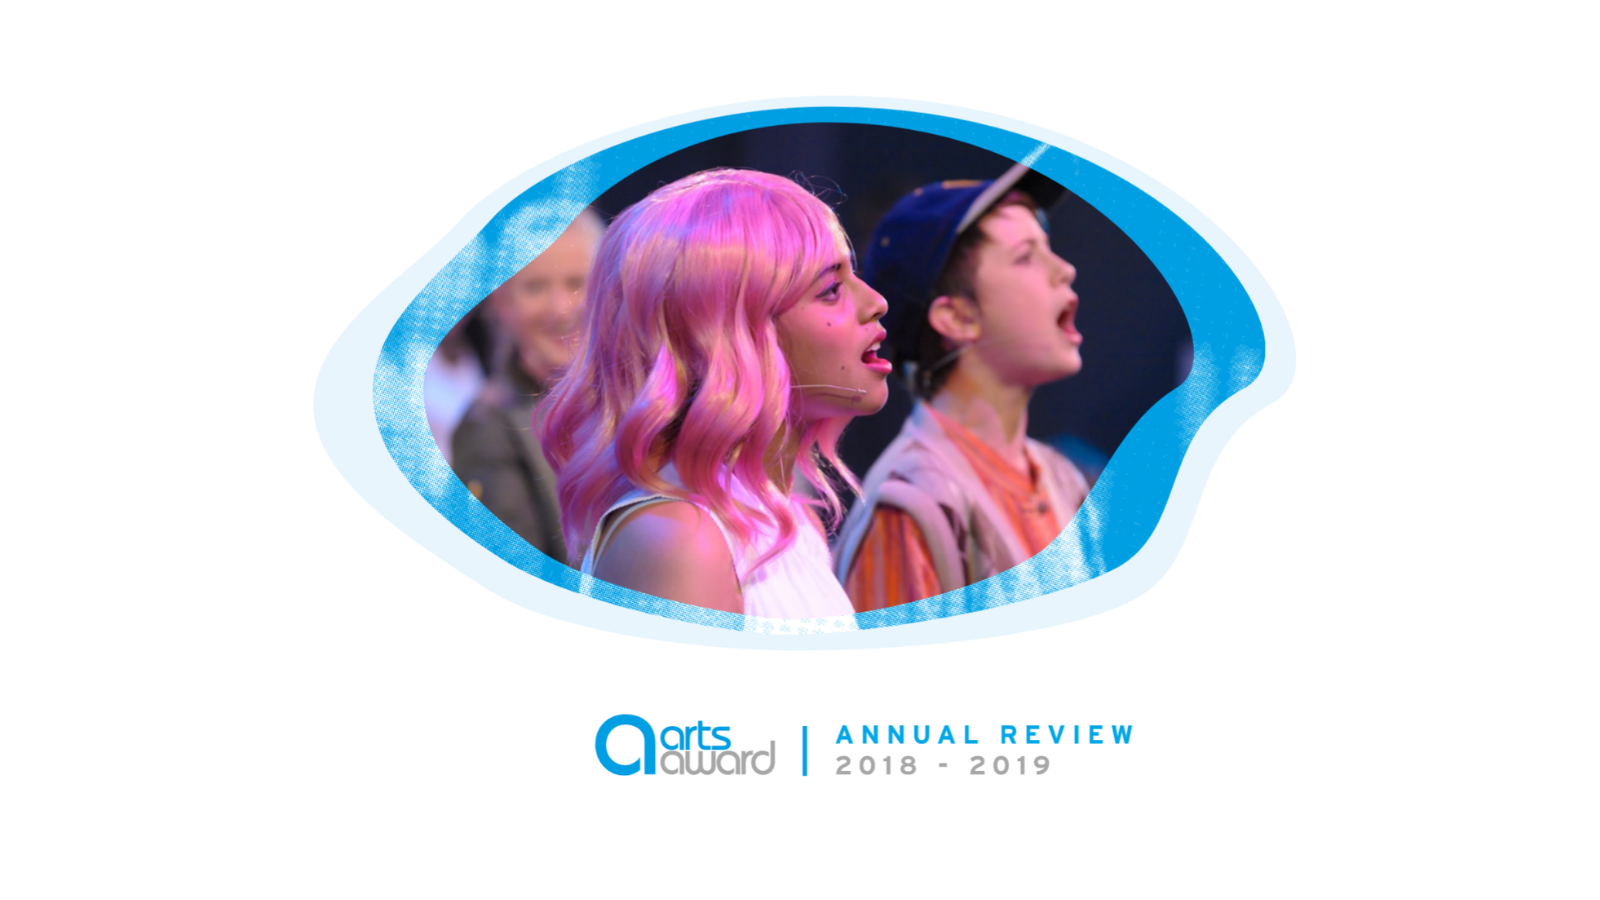 Introducing the Arts Award Annual Review 2018-19